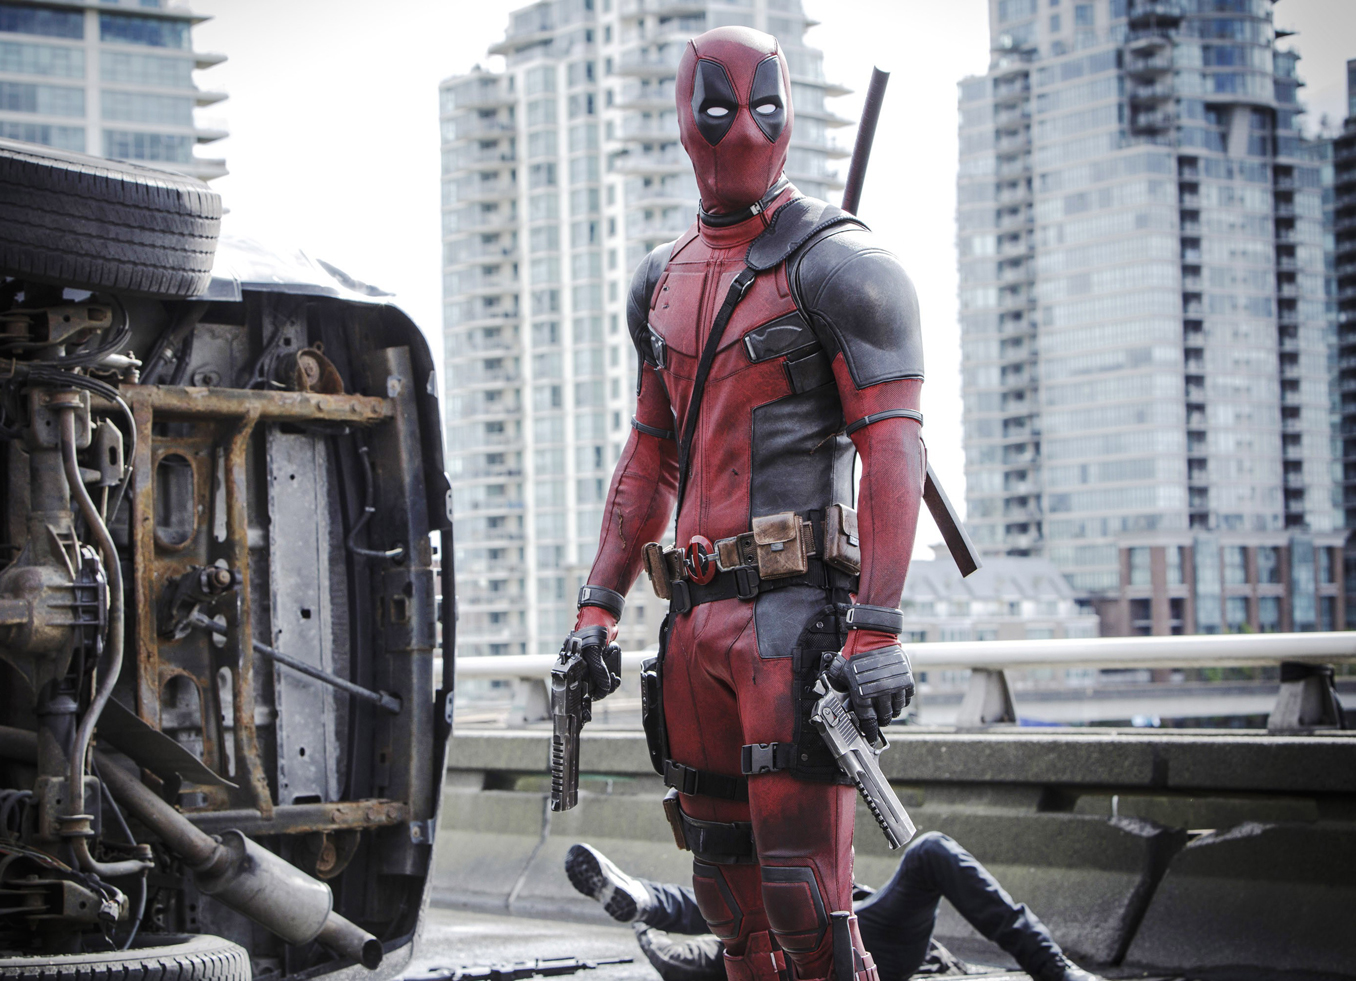 "같이 Wade Wilson/Deadpool in <em>데드 풀,</em> 2016 년<br/>""></div></div></div><div class="